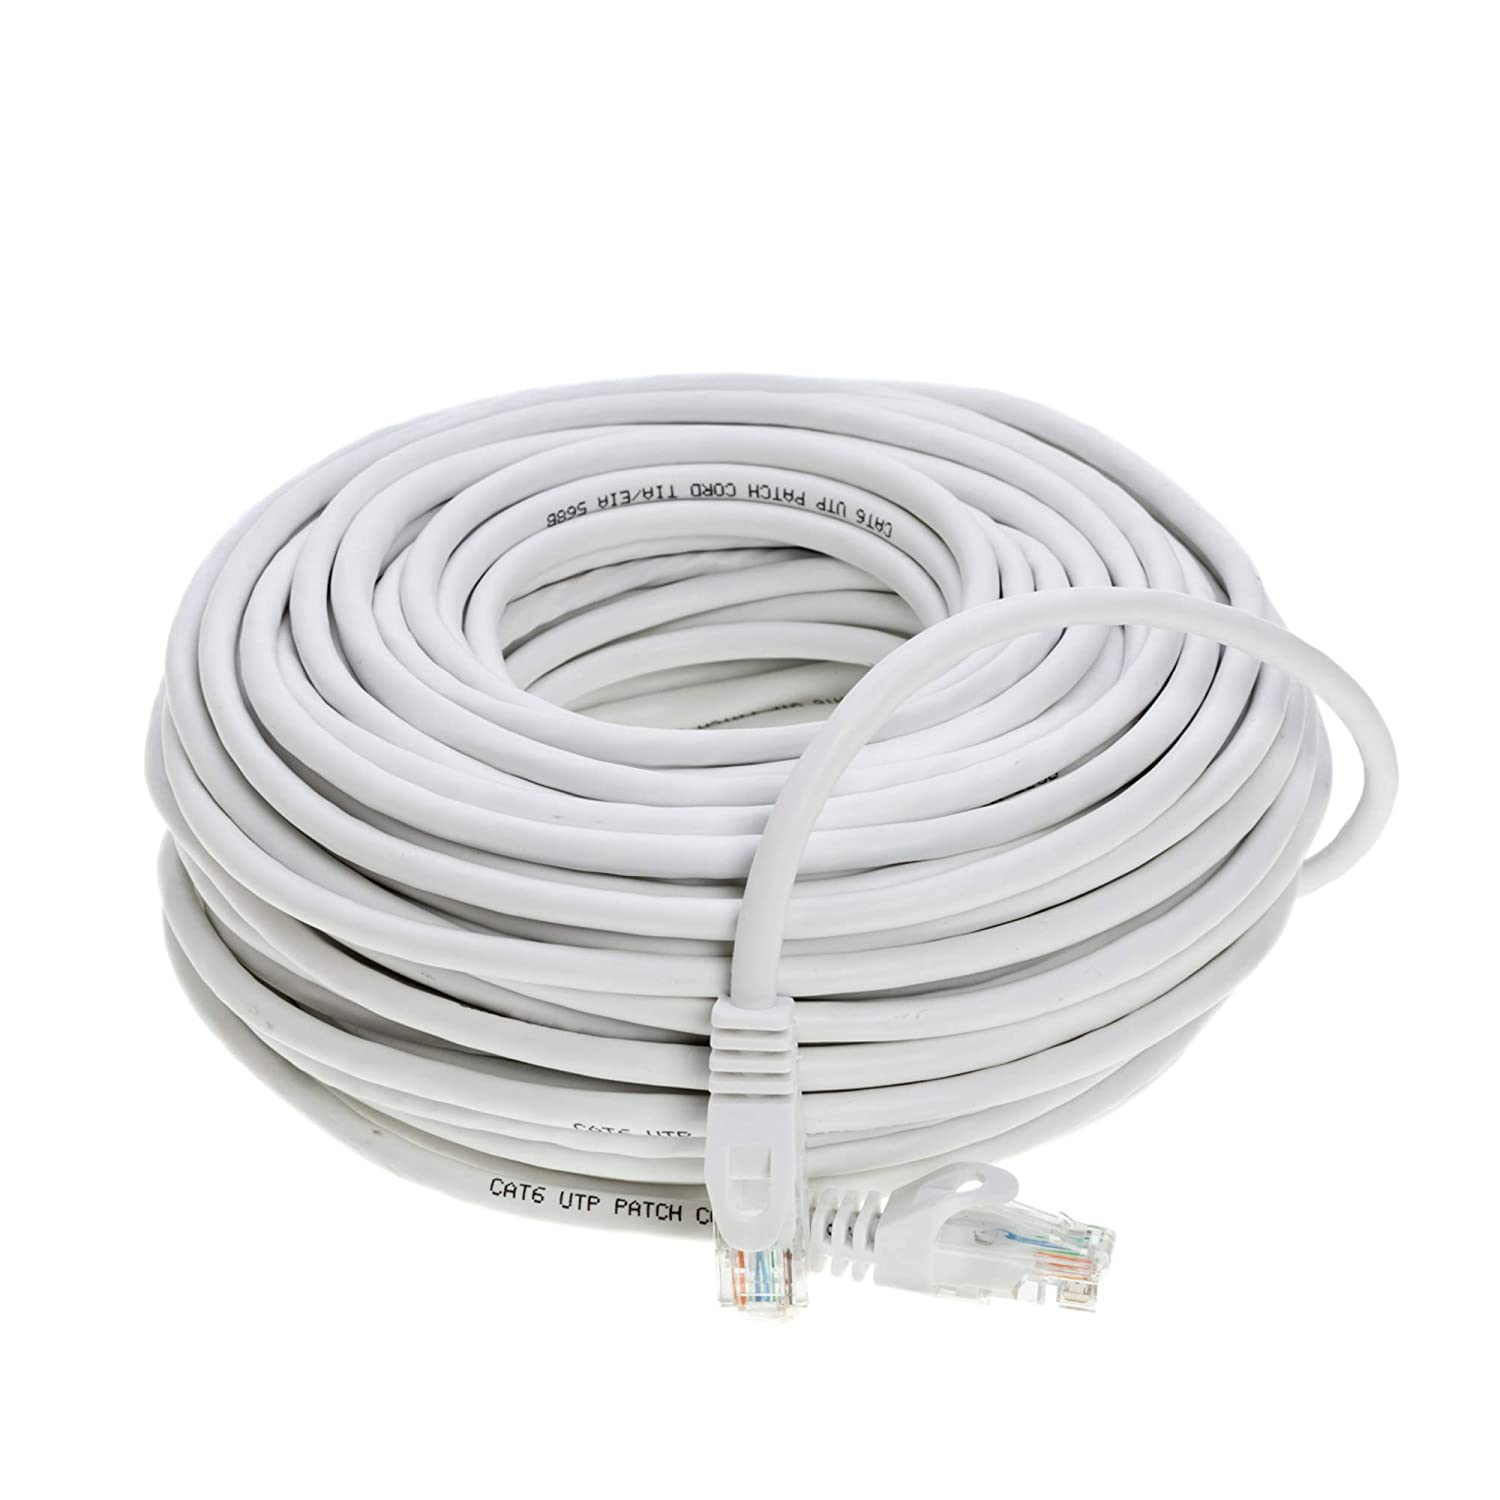 75ft Cat6 Networking Rj45 Ethernet Patch Cable Xbox Pc Data Wiring Modem Ps4 Router 75 Feet White Computers Accessories